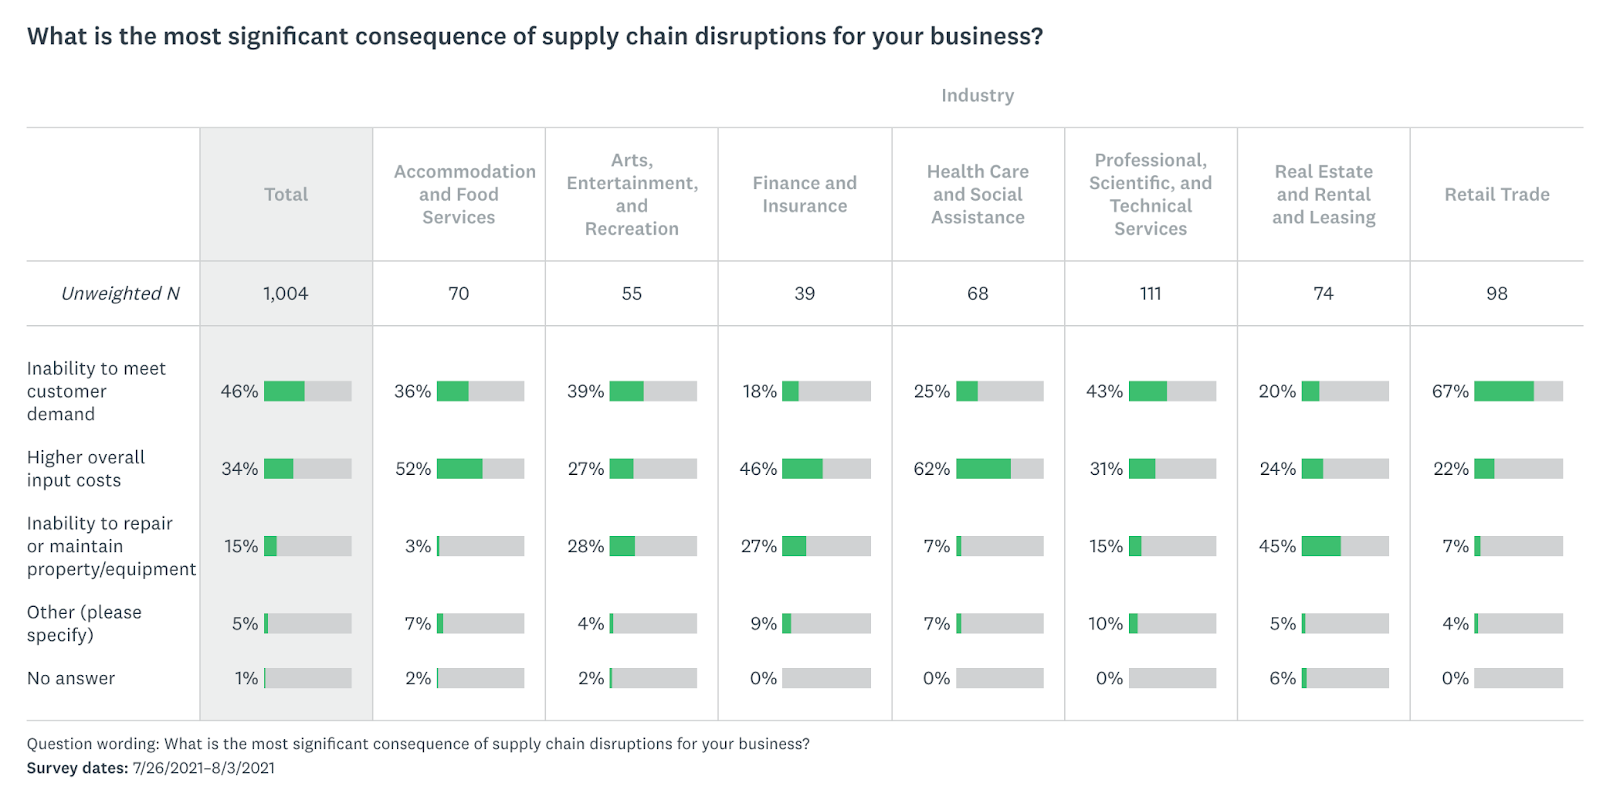 """Image of survey responses to the question """"What is the most significant consequence of supply chain disruptions for your business?"""" with responses broken out by industry."""